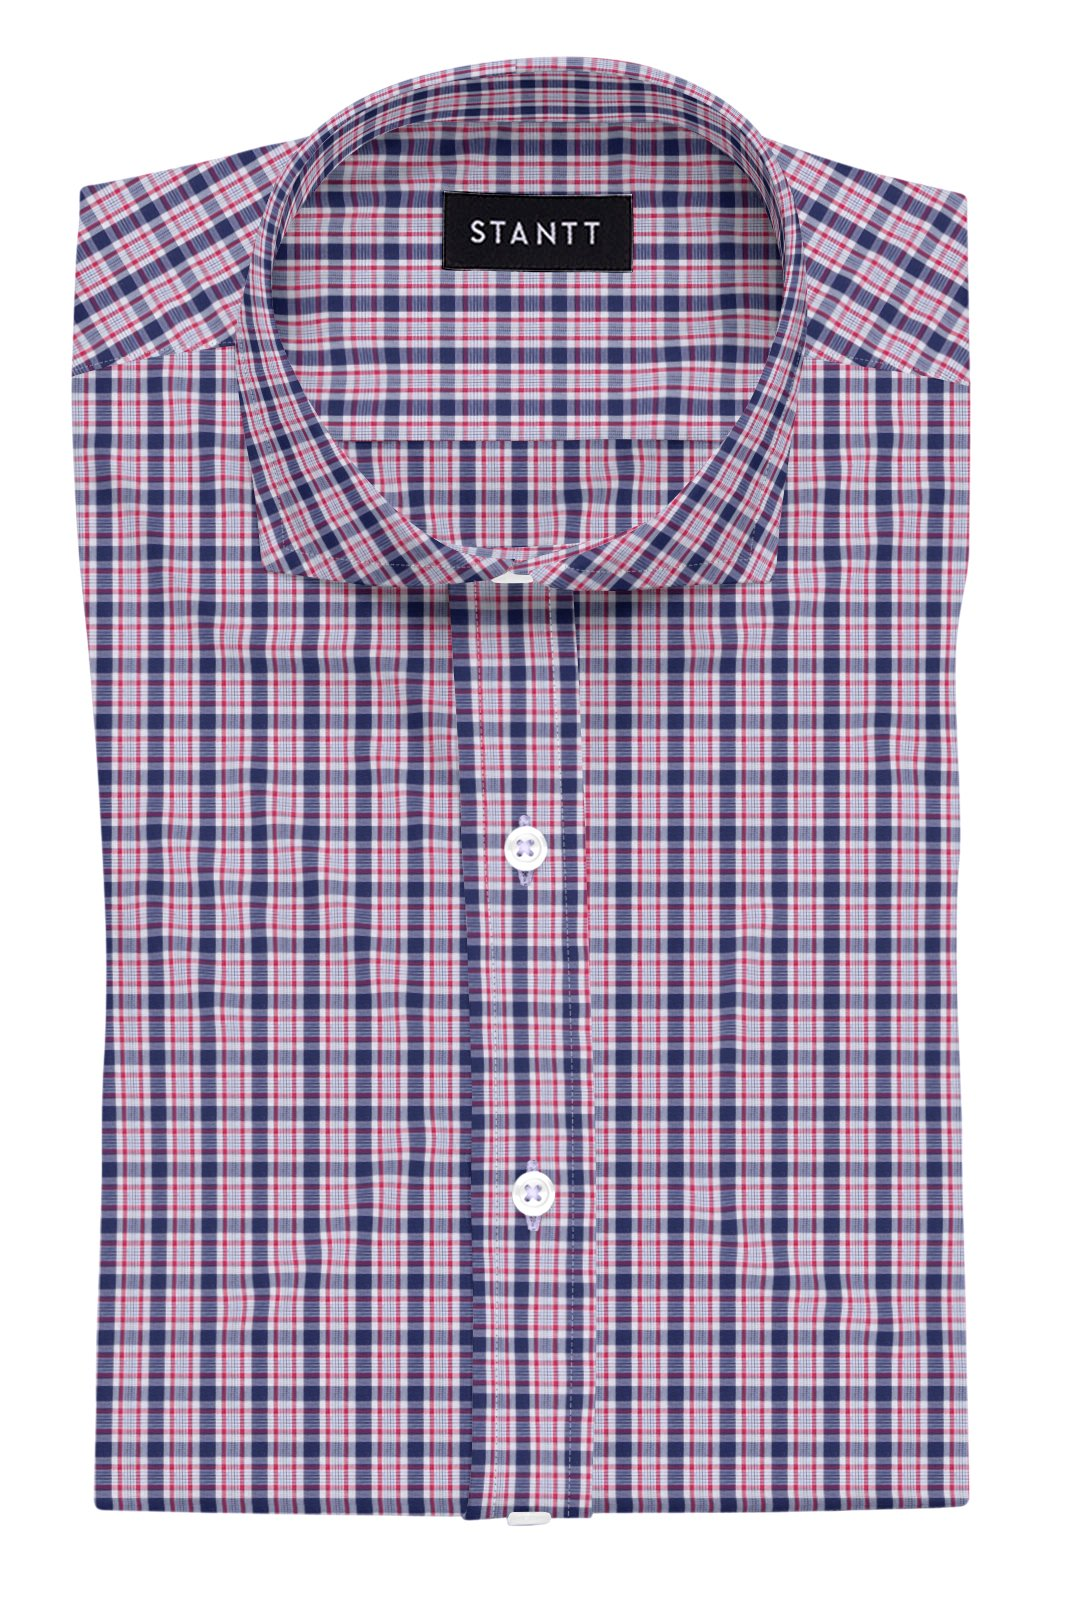 Cardinal Red and Navy Multi Check: Cutaway Collar, Barrel Cuff